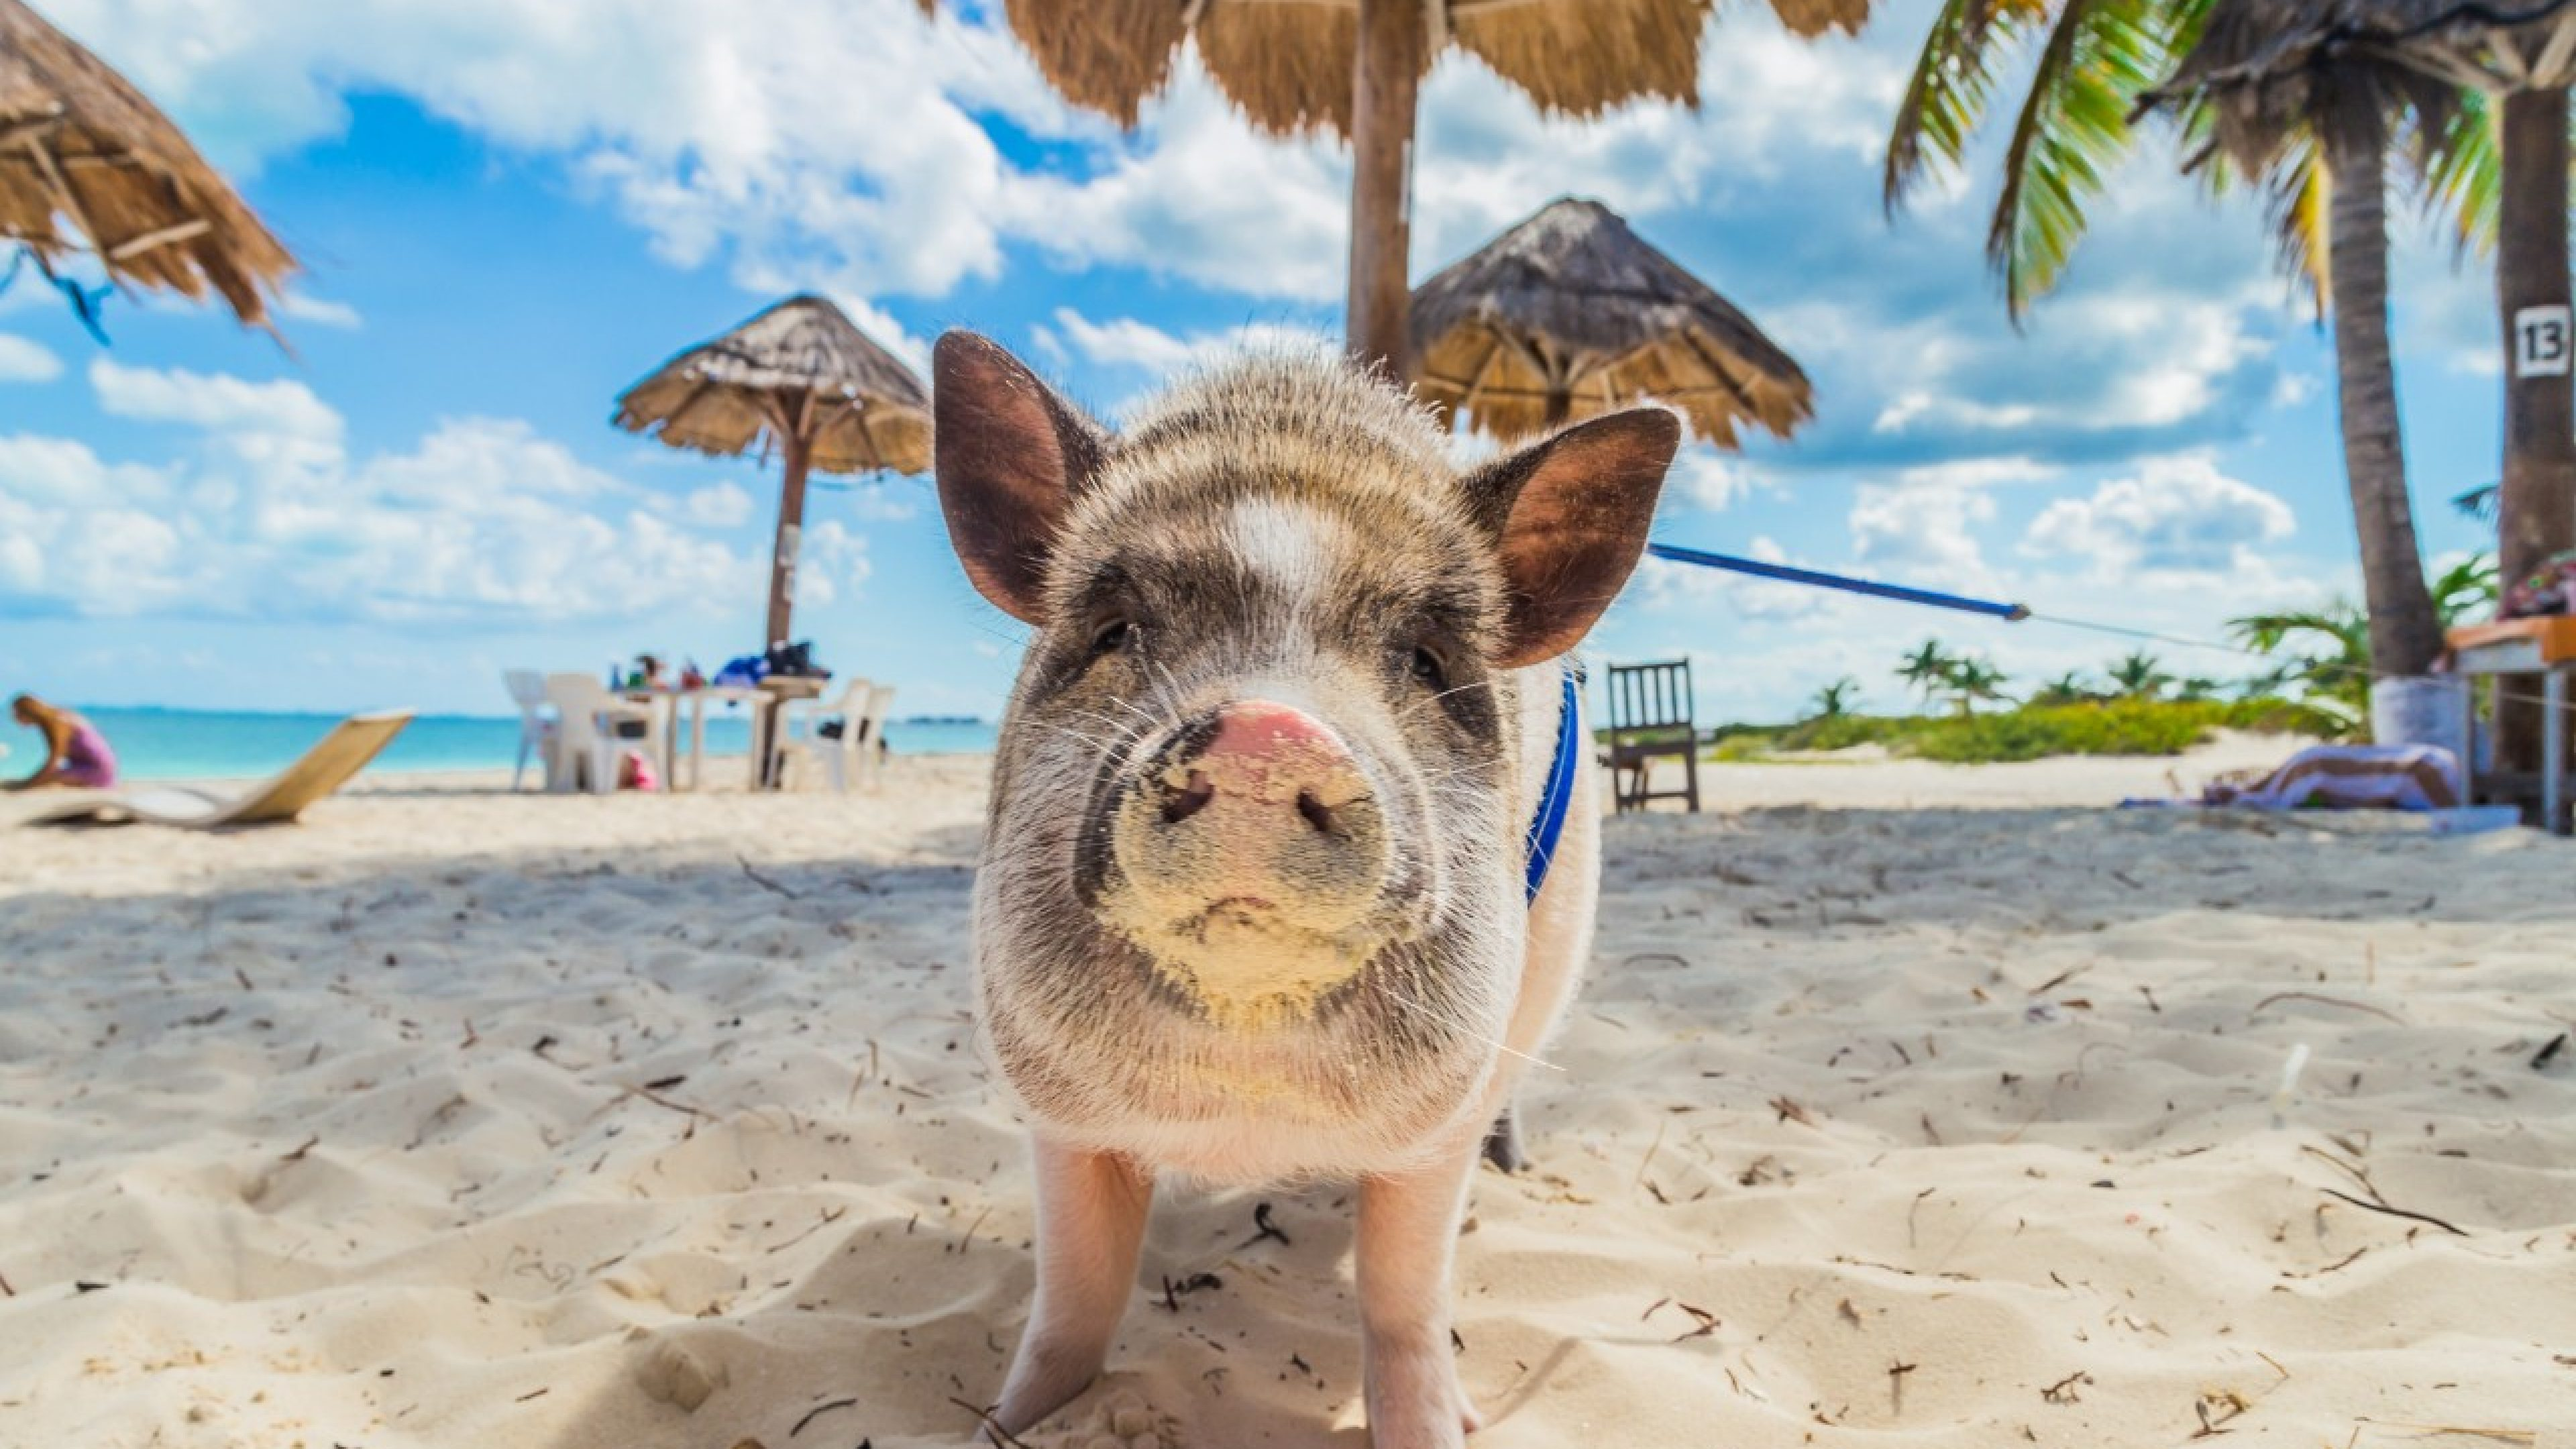 Home Pig walks along the beach in Cancun